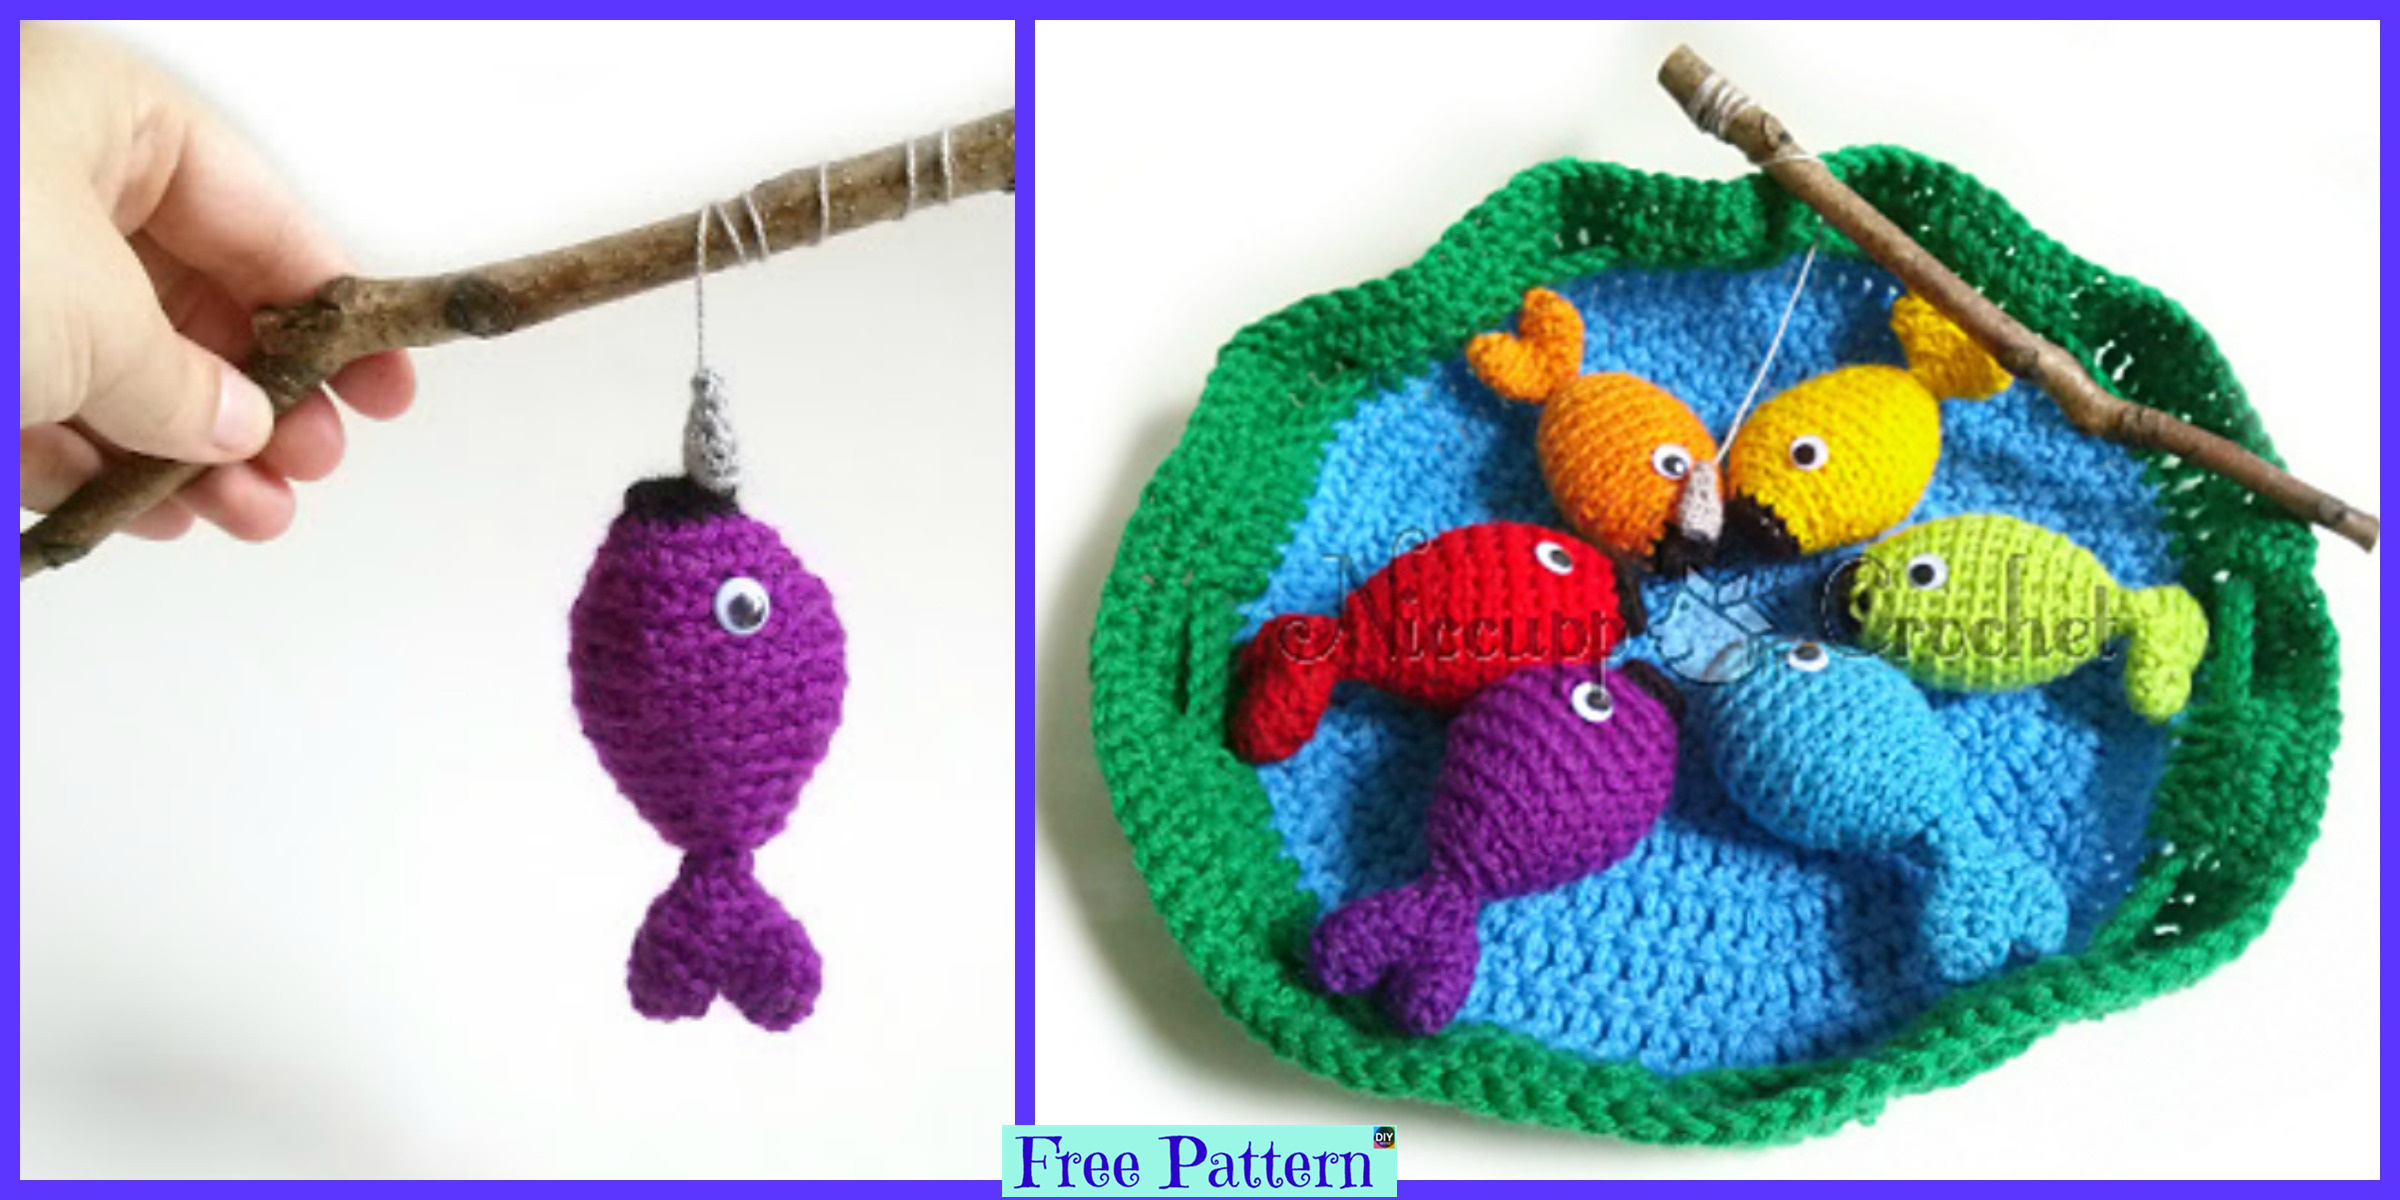 Crochet Rainbow Fishing Game – Free Pattern